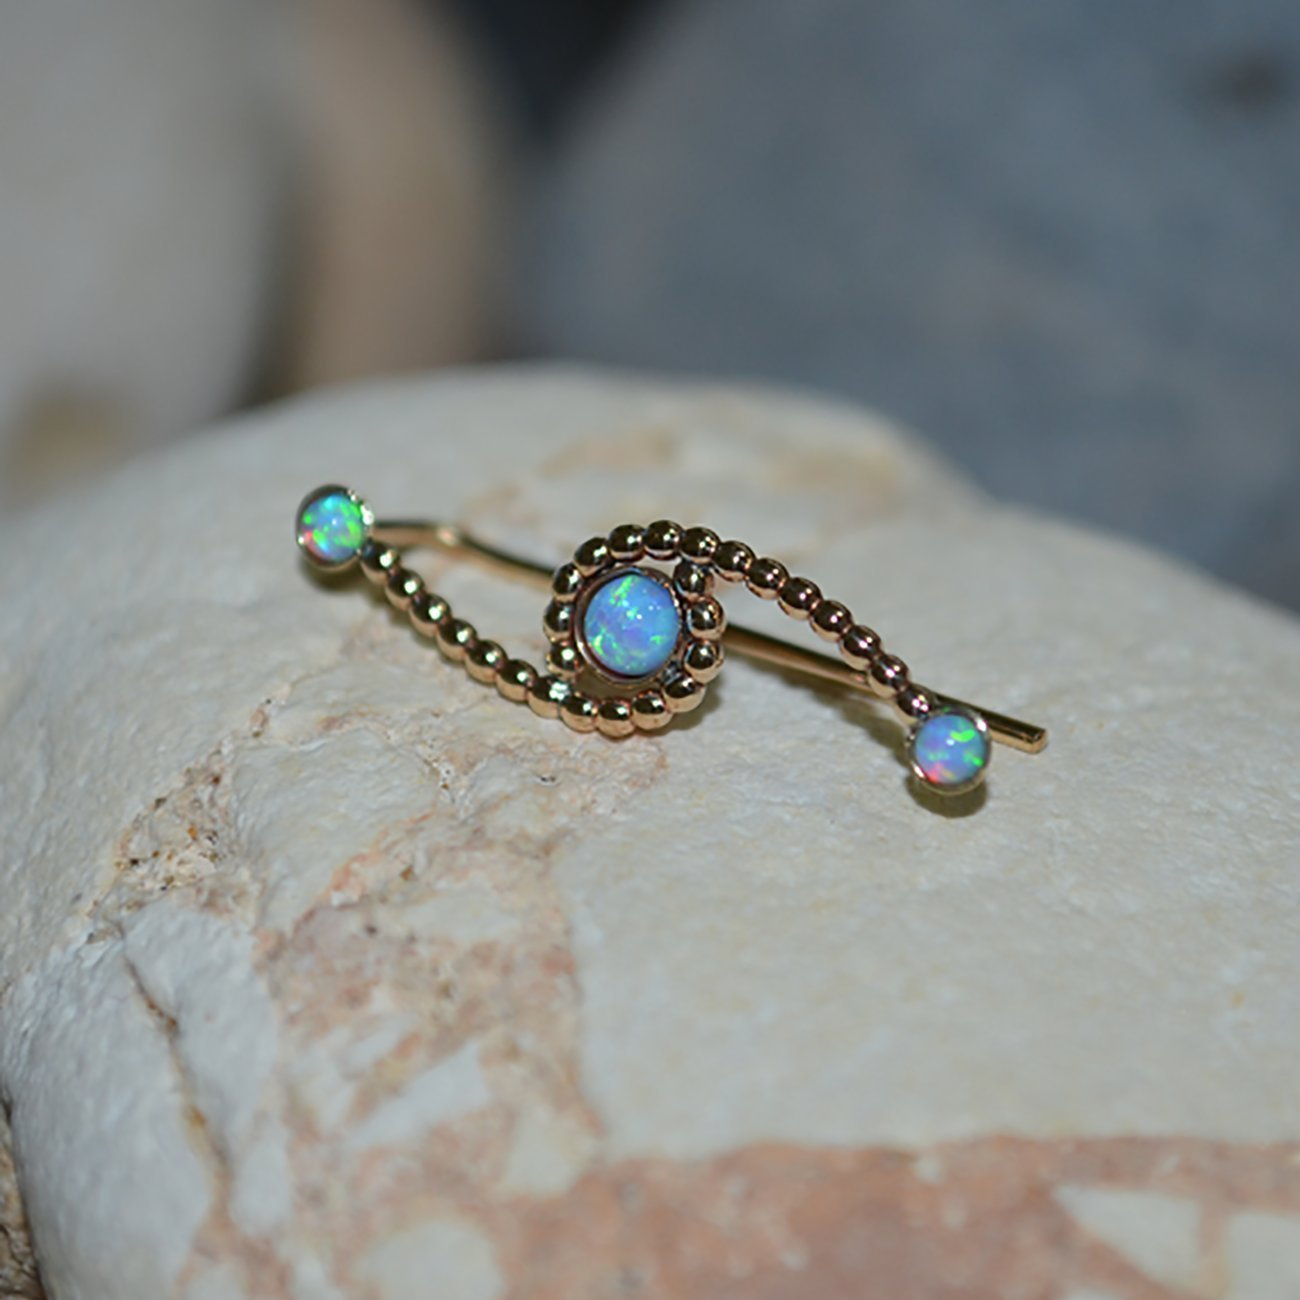 Gold EAR CLIMBER Opal//Light Blue Opal Ear Pins - Minimalist Earrings - Ear Sweep - Earcuff - Wrap Earrings